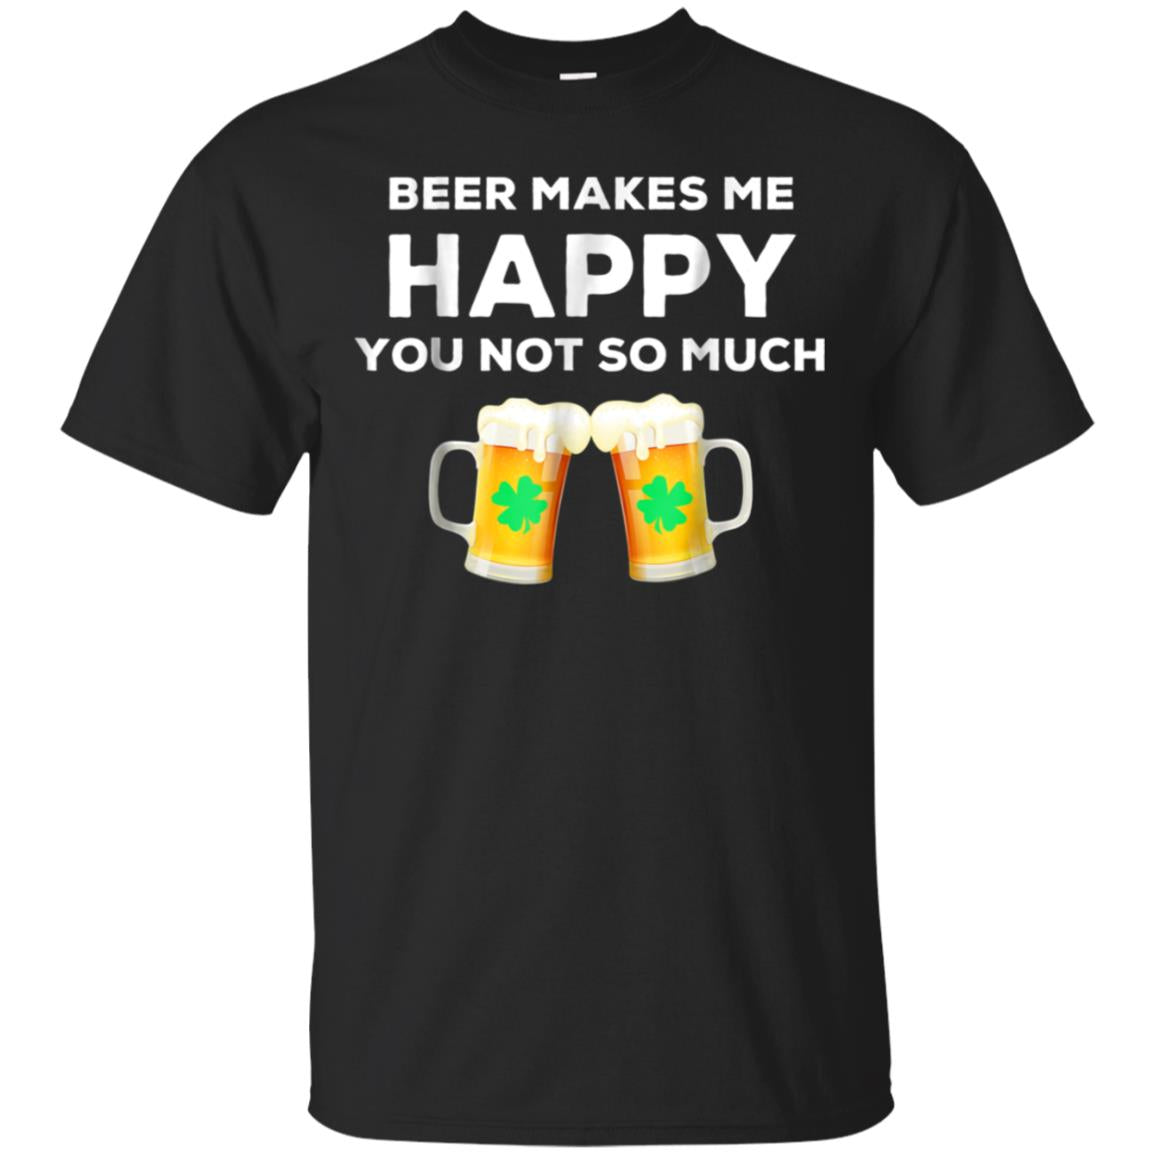 BEER MAKES ME HAPPY t shirt 99promocode